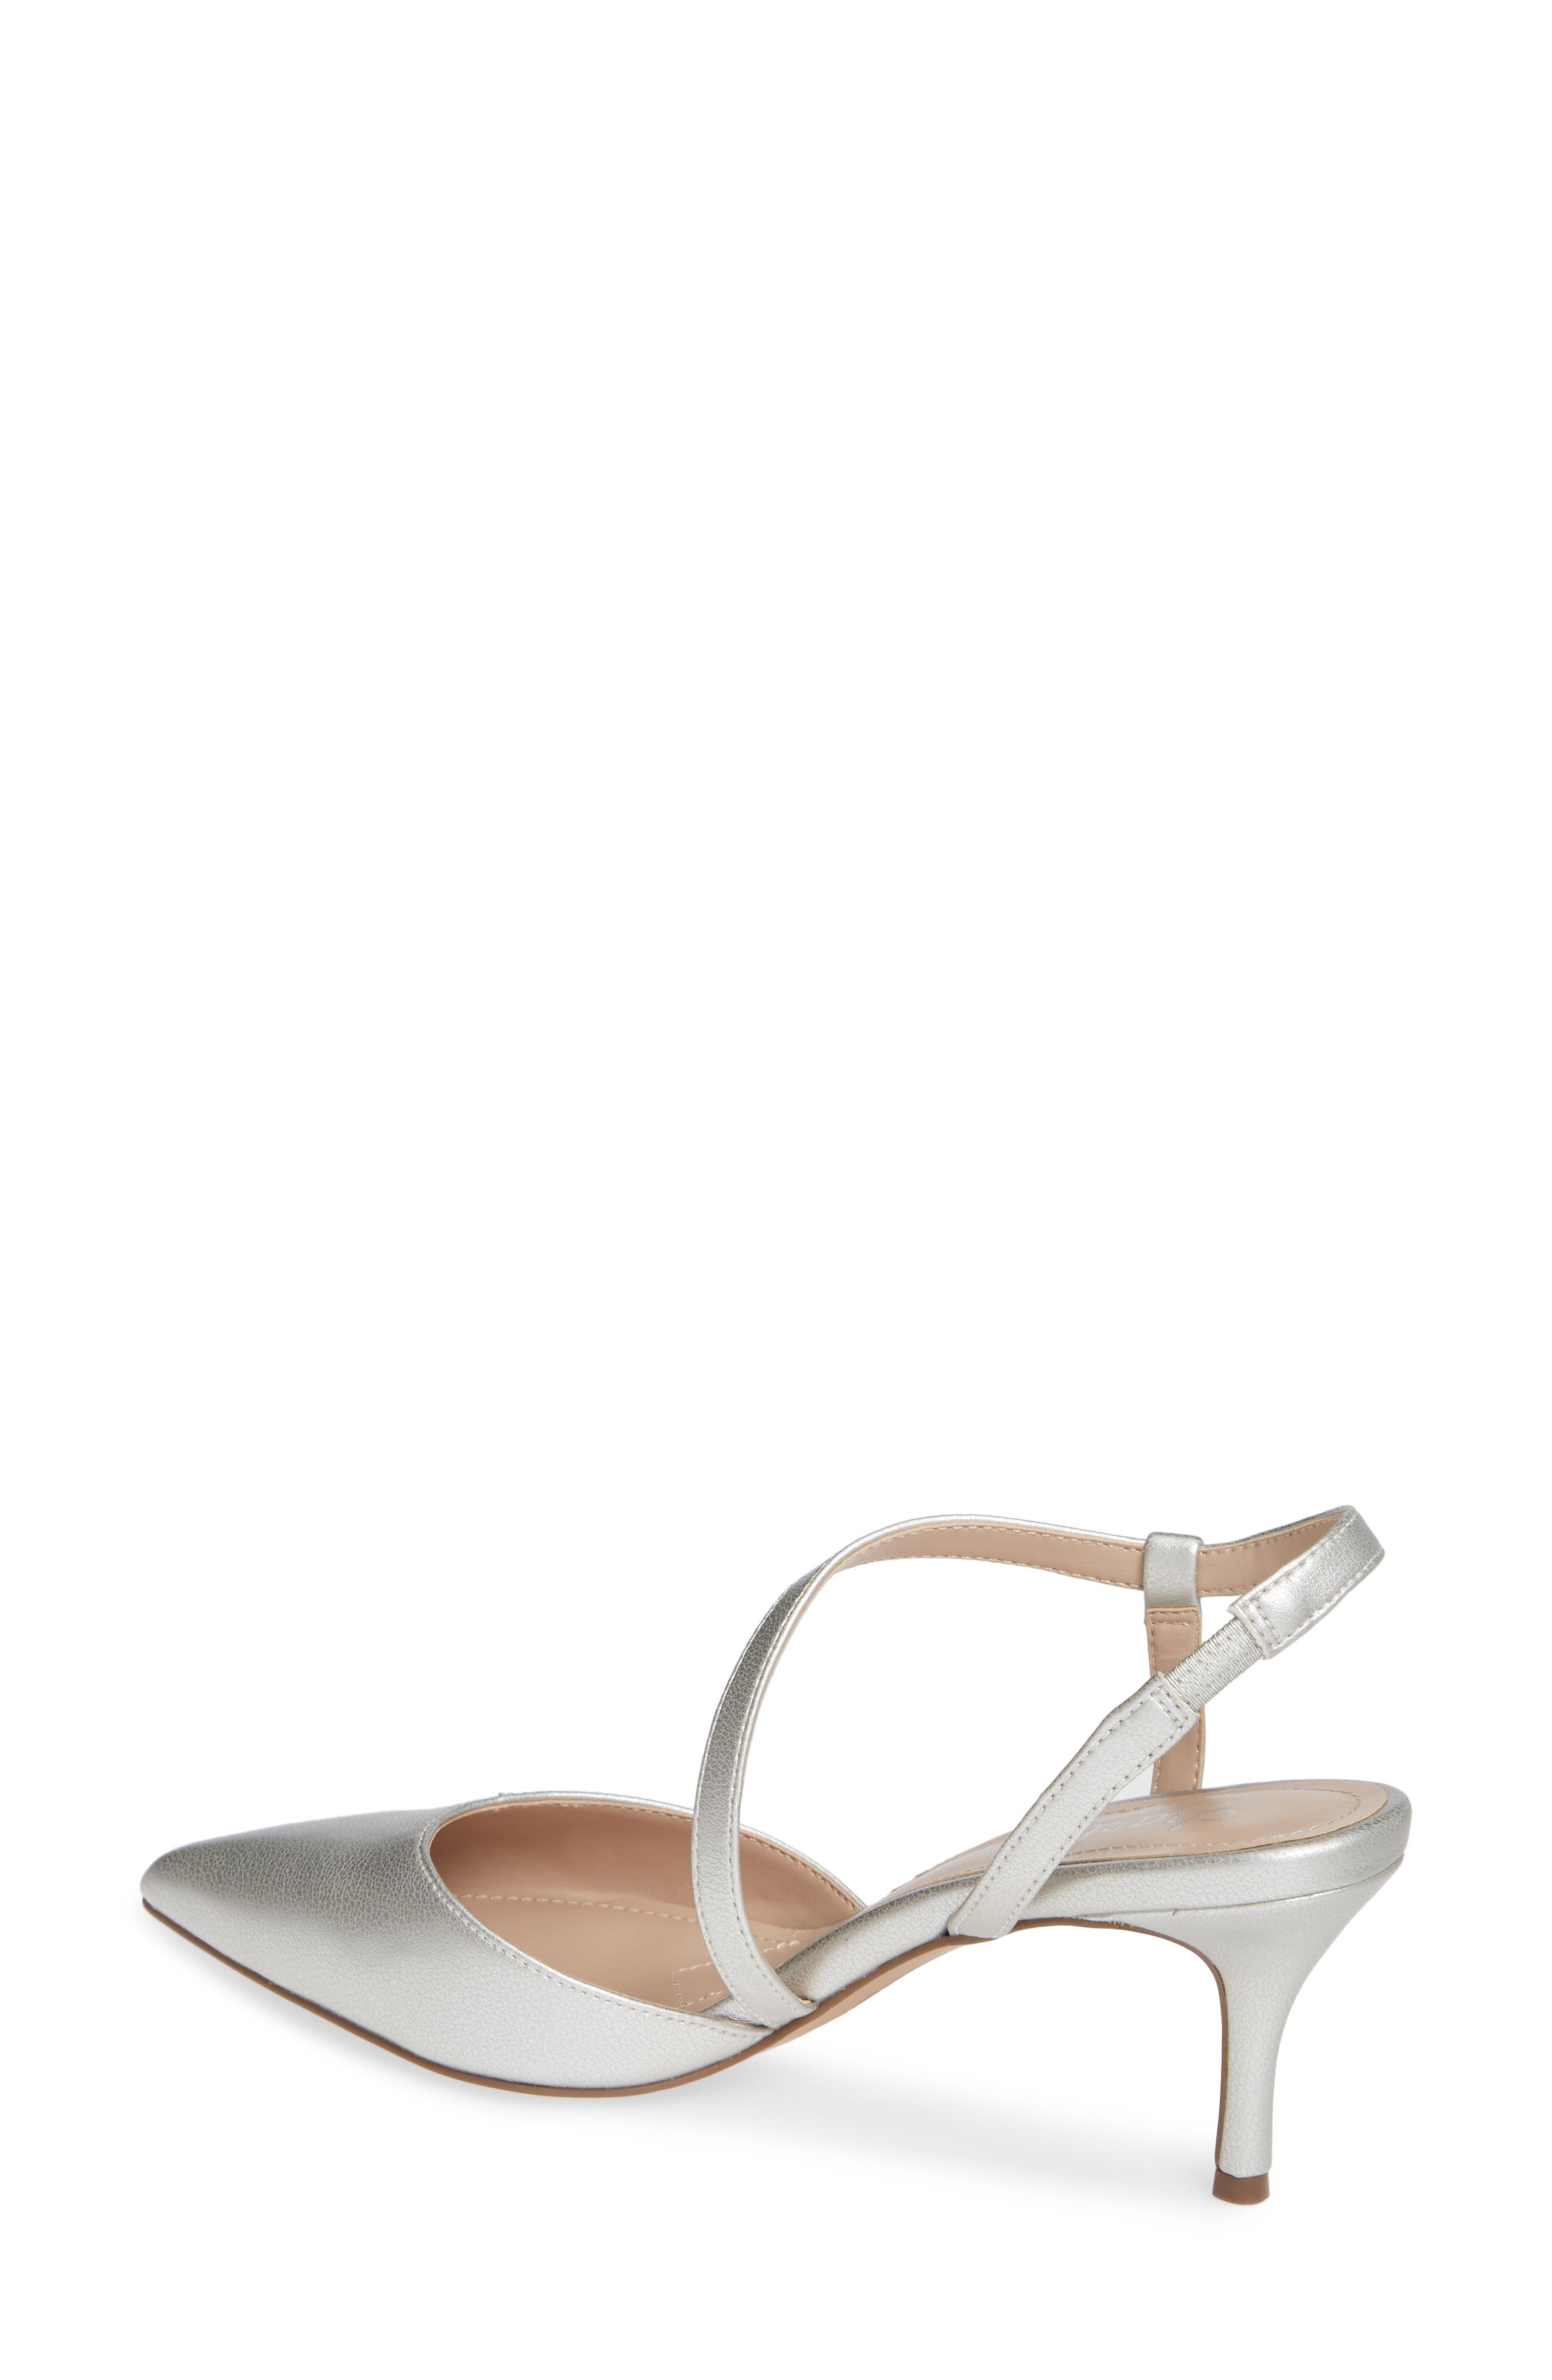 CHARLES BY CHARLES DAVID, Alda Pump, Alternate thumbnail 2, color, SILVER FAUX LEATHER